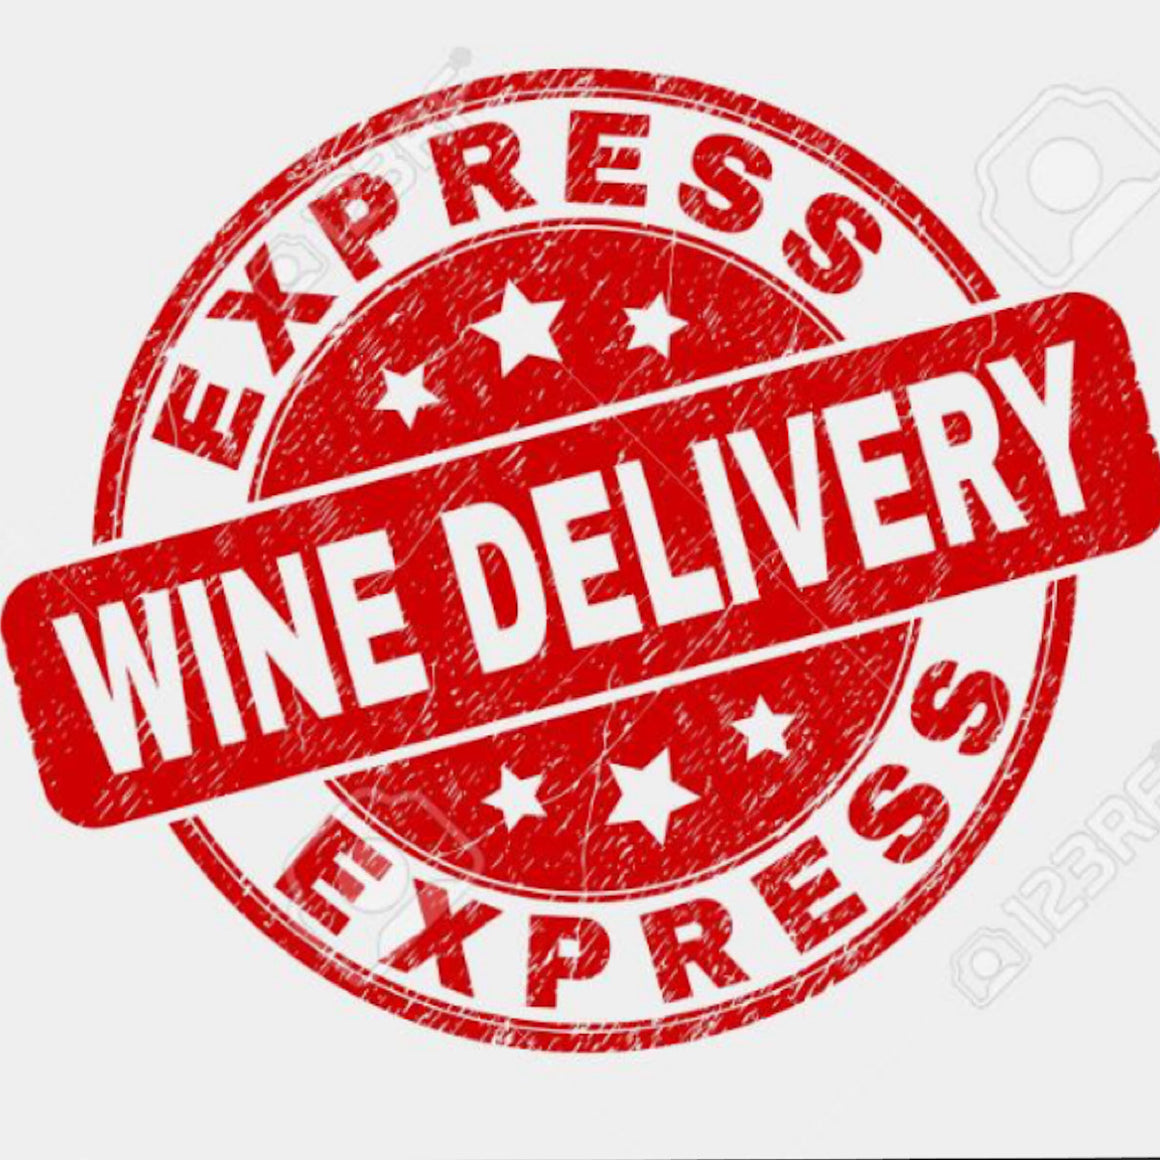 UBER YOUR WINE YOU BUY, CALL 07403156705!